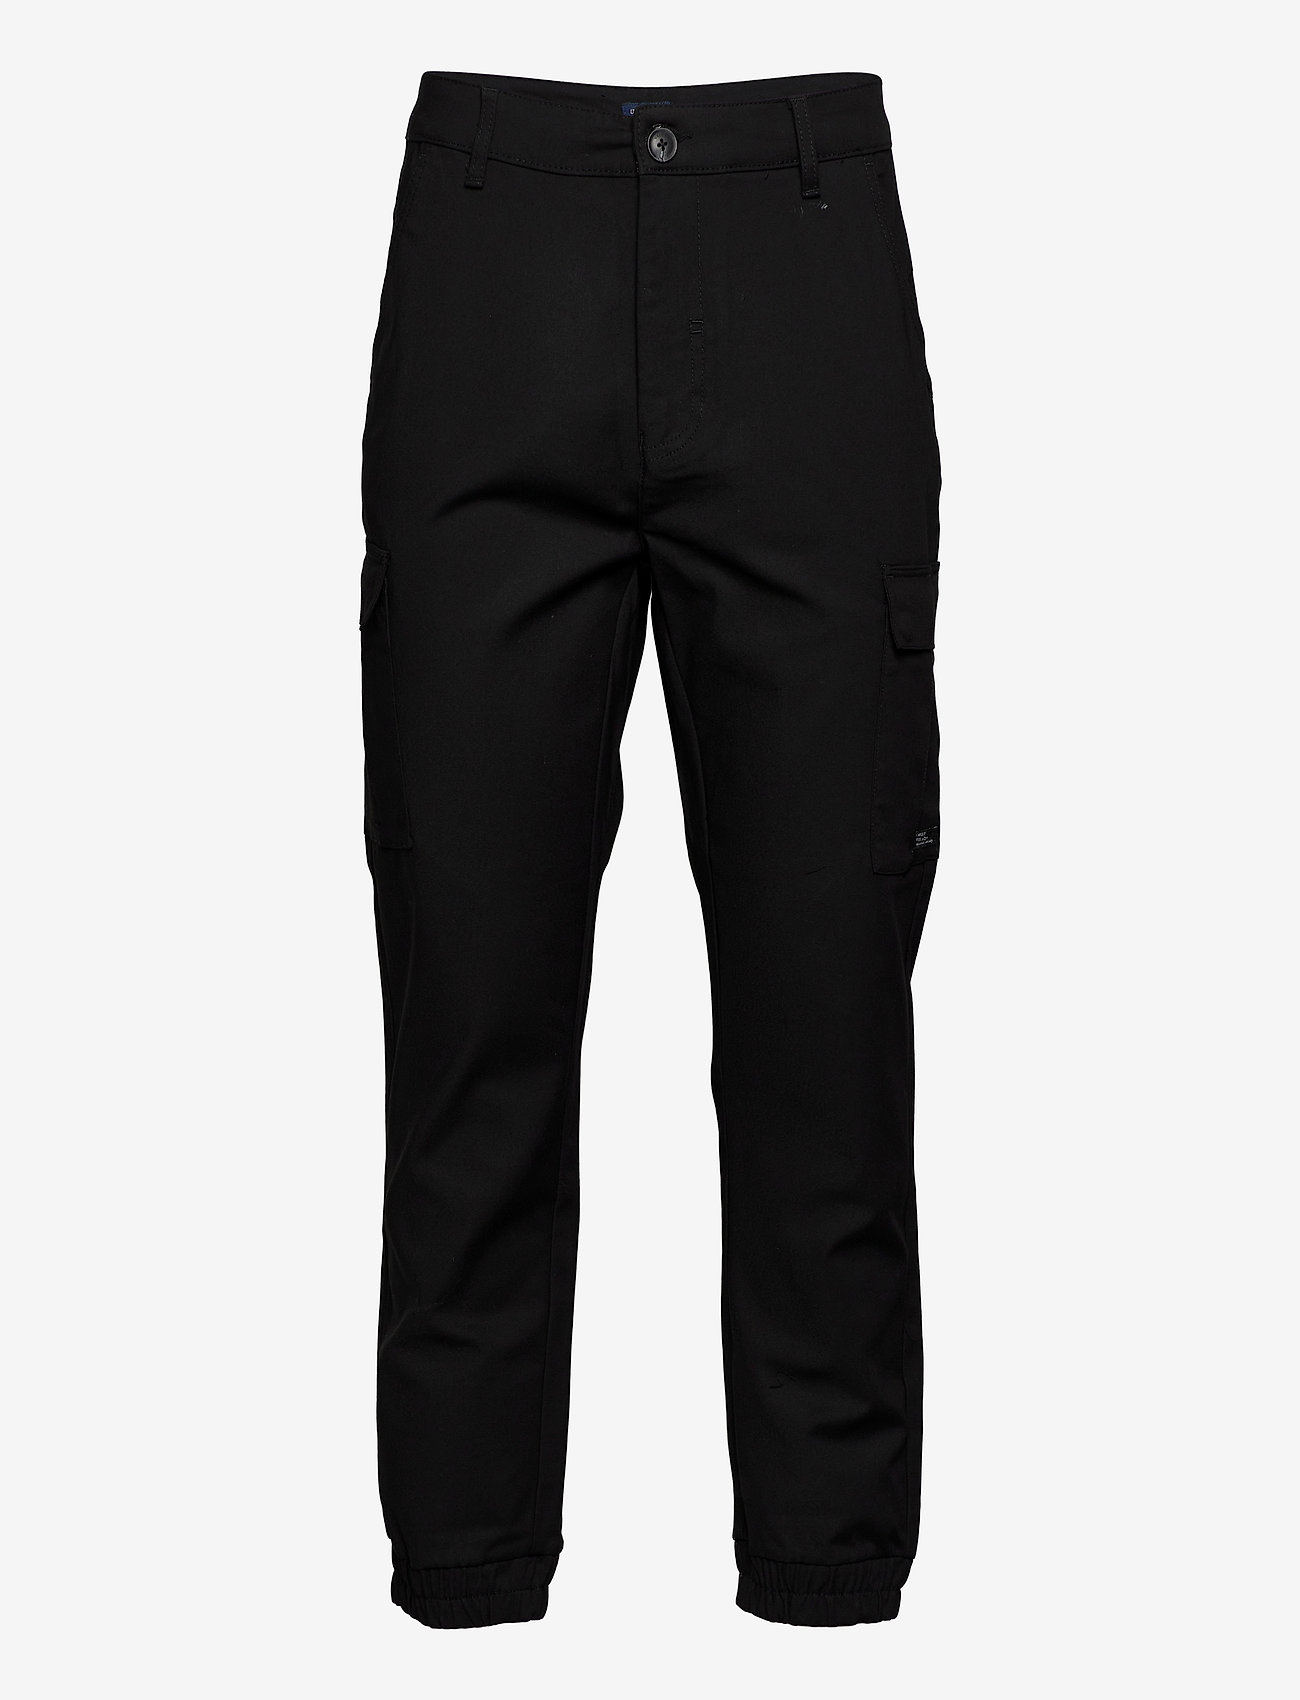 Blend - Pants - chino's - black - 0